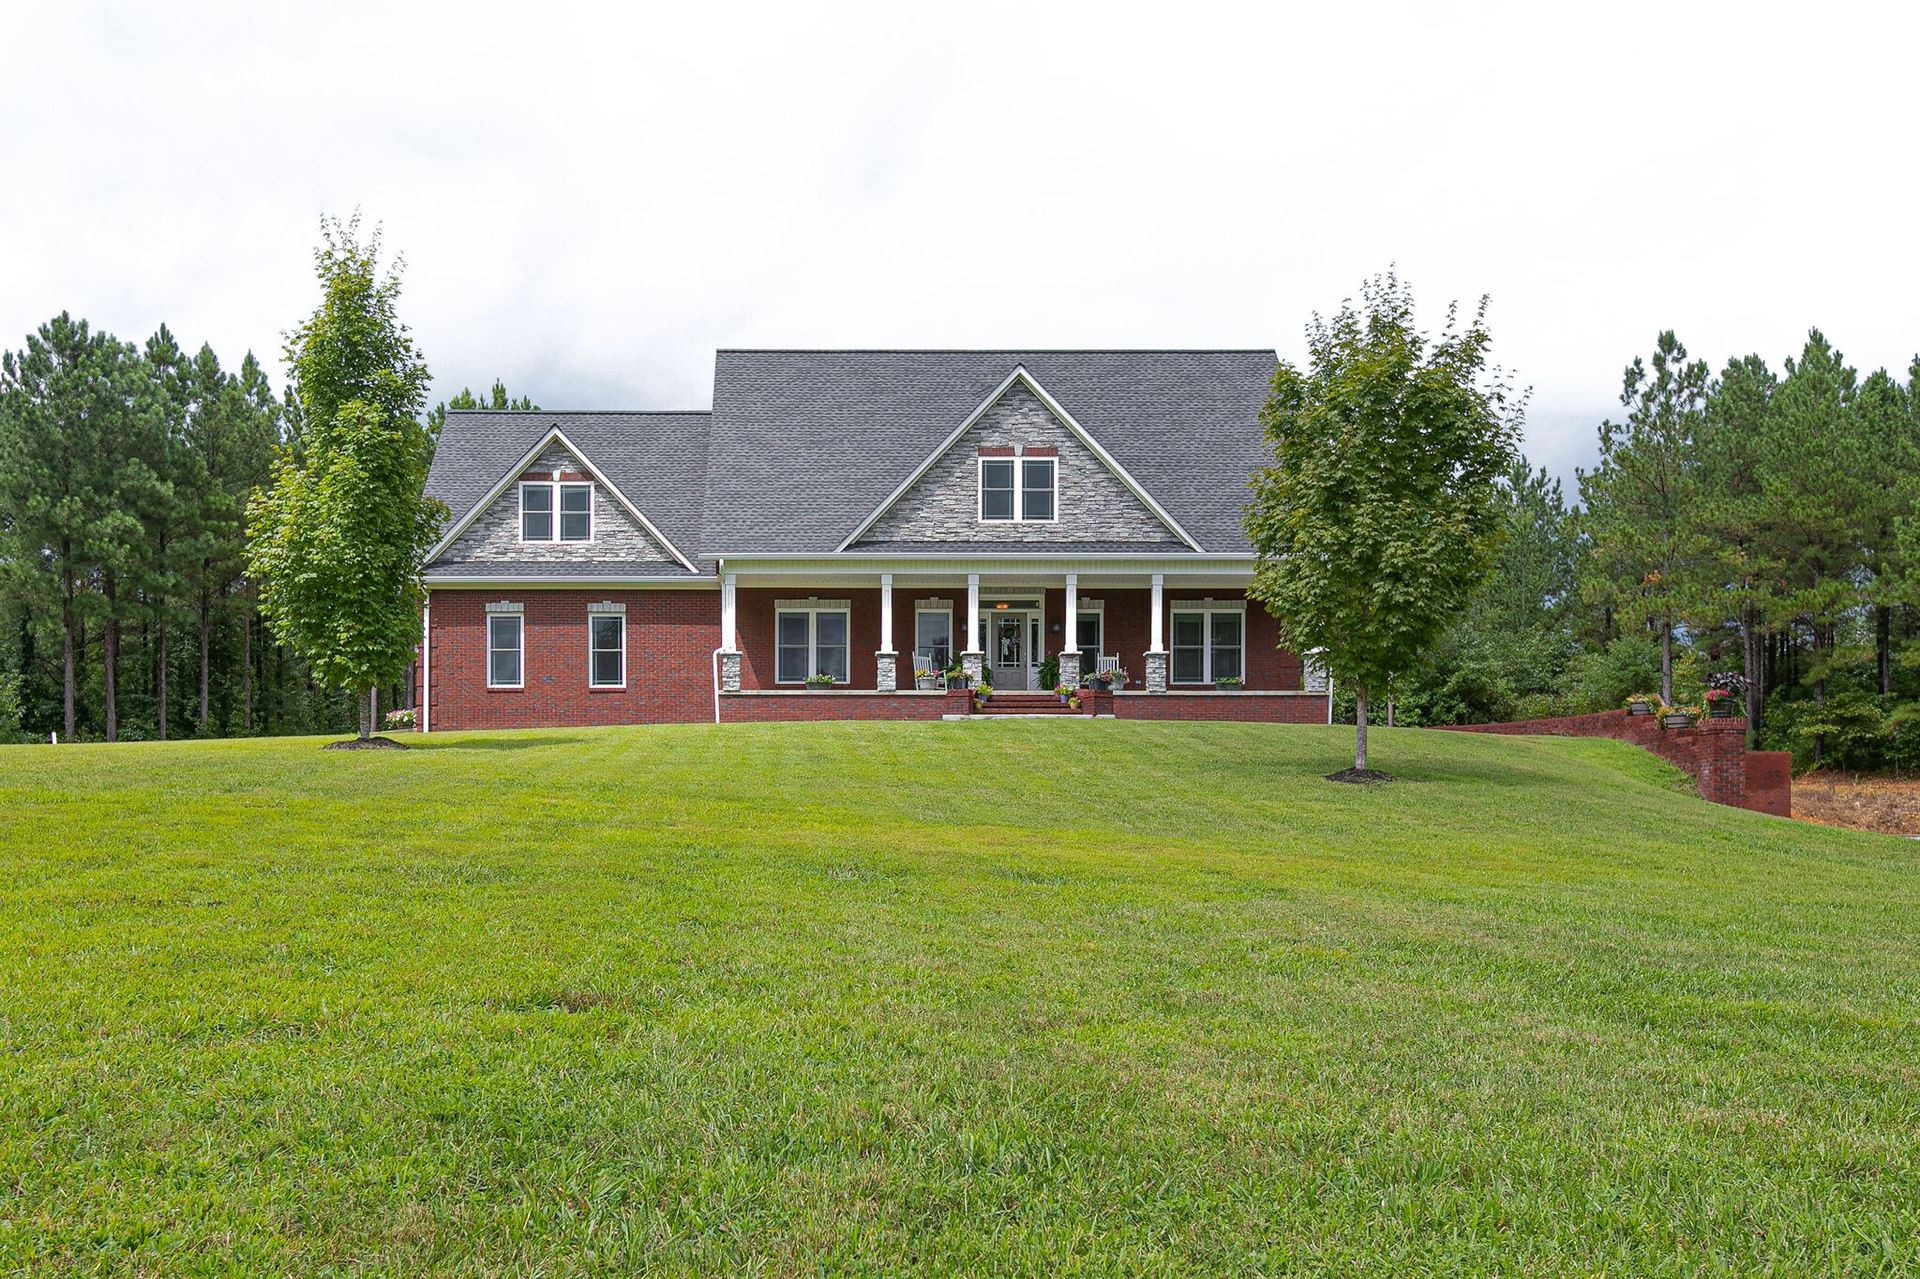 244 Double Eagle Dr, Summertown, TN 38483 - MLS#: 2280843